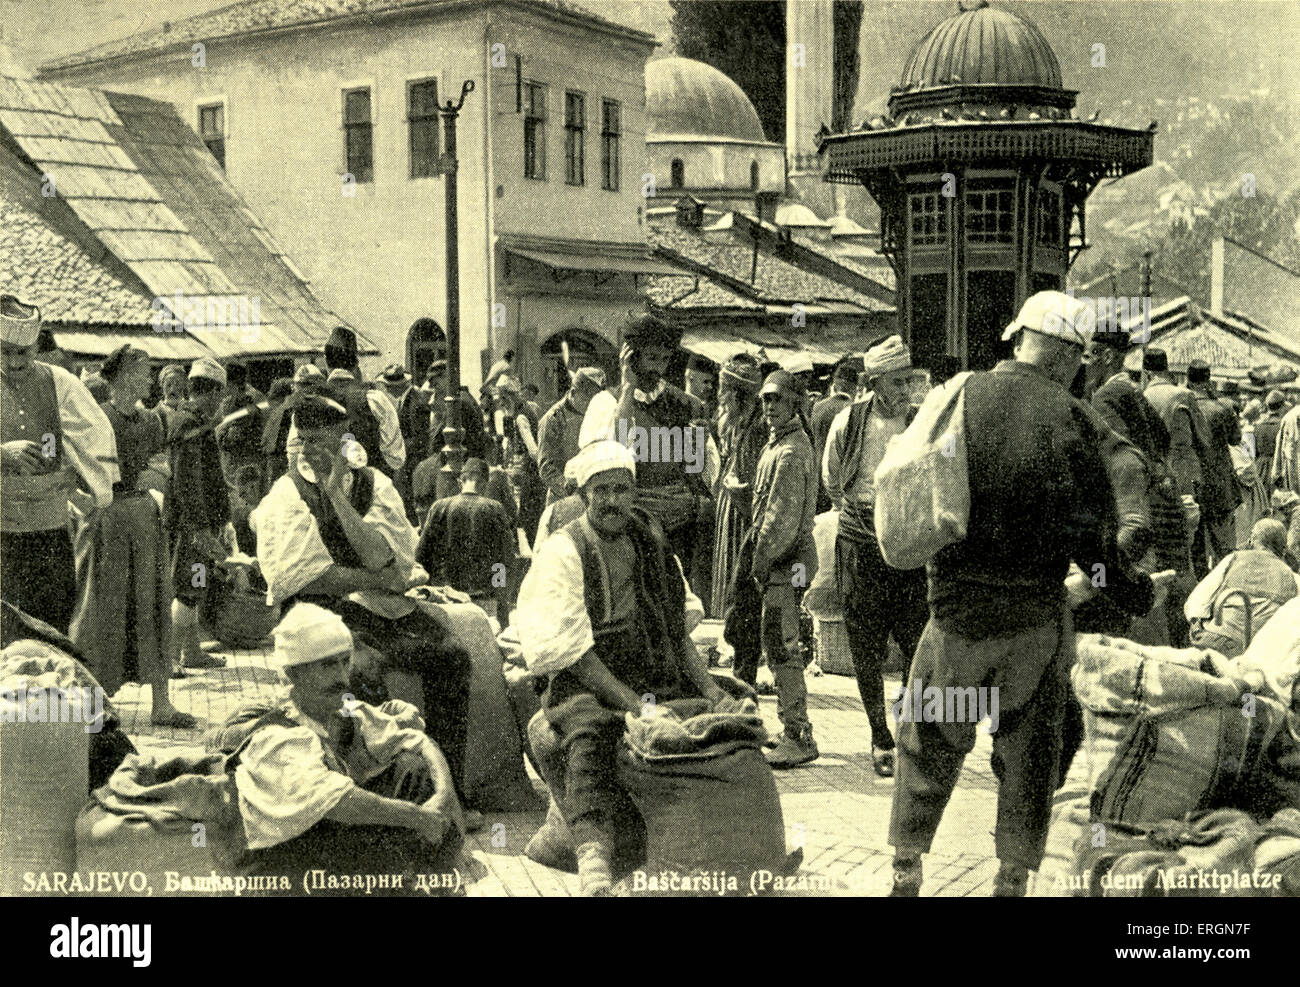 Tthe market in Sarajevo, Serbia. C. 1930s. Men wearing traditional costume with large sacks of produce. One woman - Stock Image